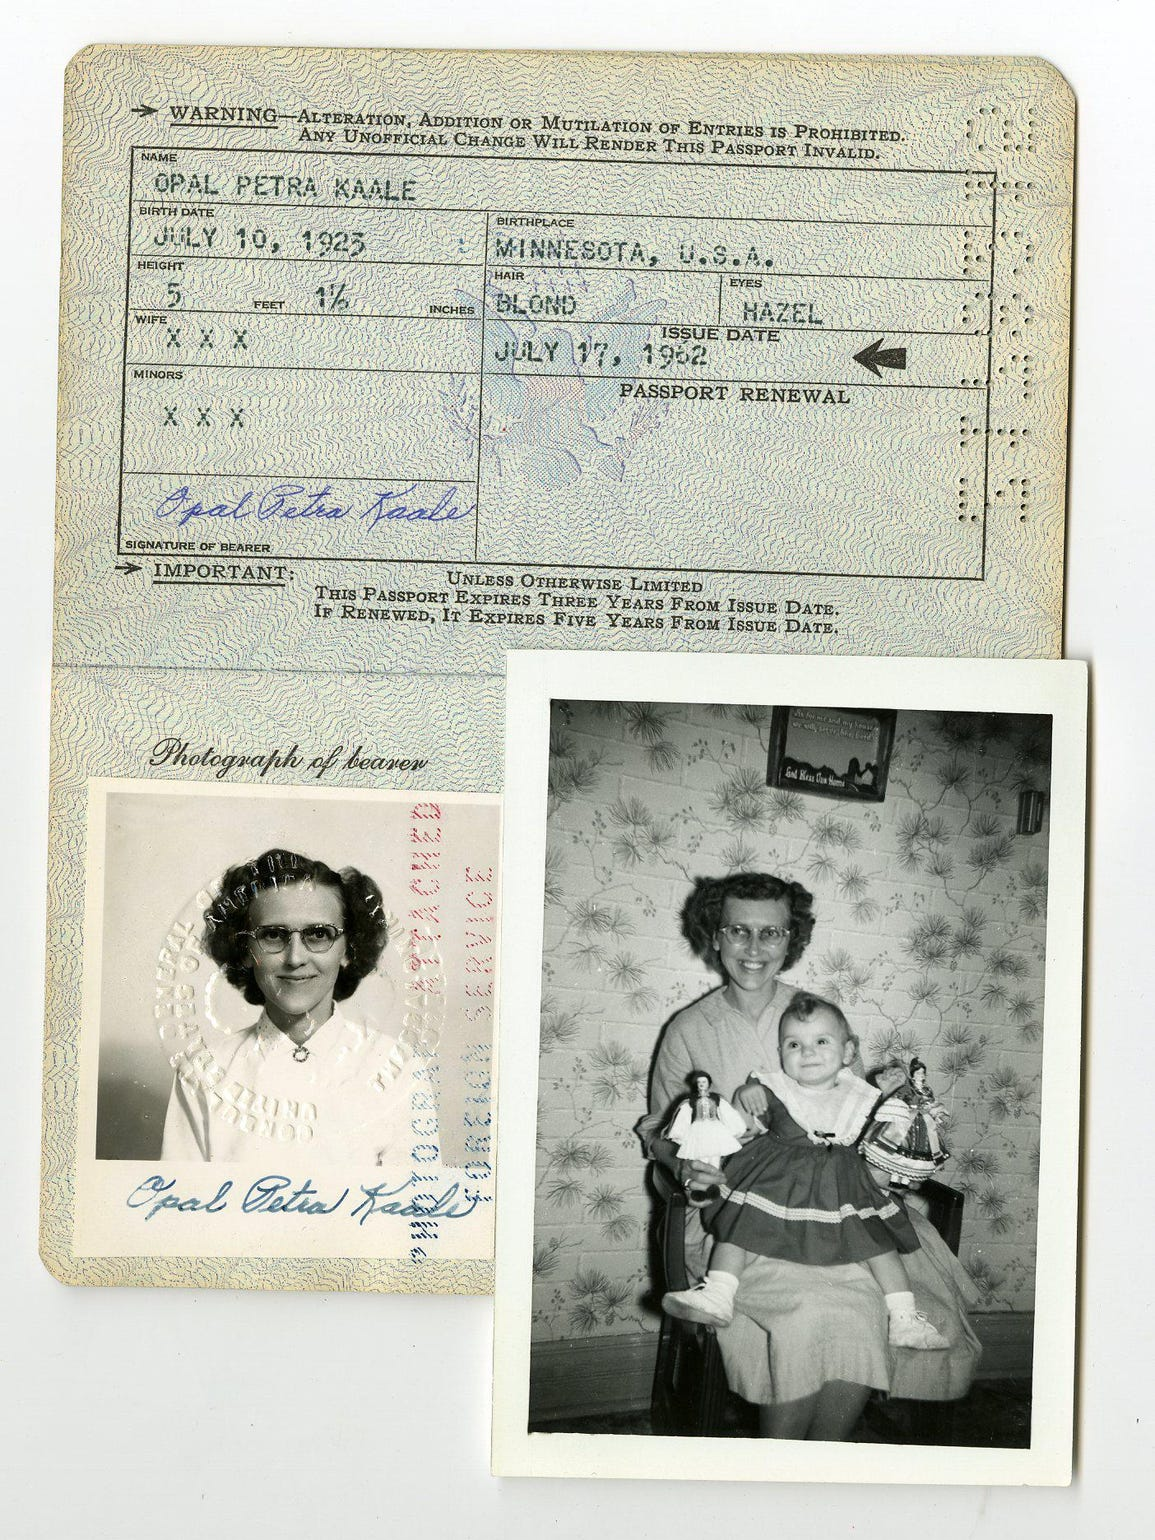 The passport of Kim Kruse's adoptive mother, Opal Kaale,